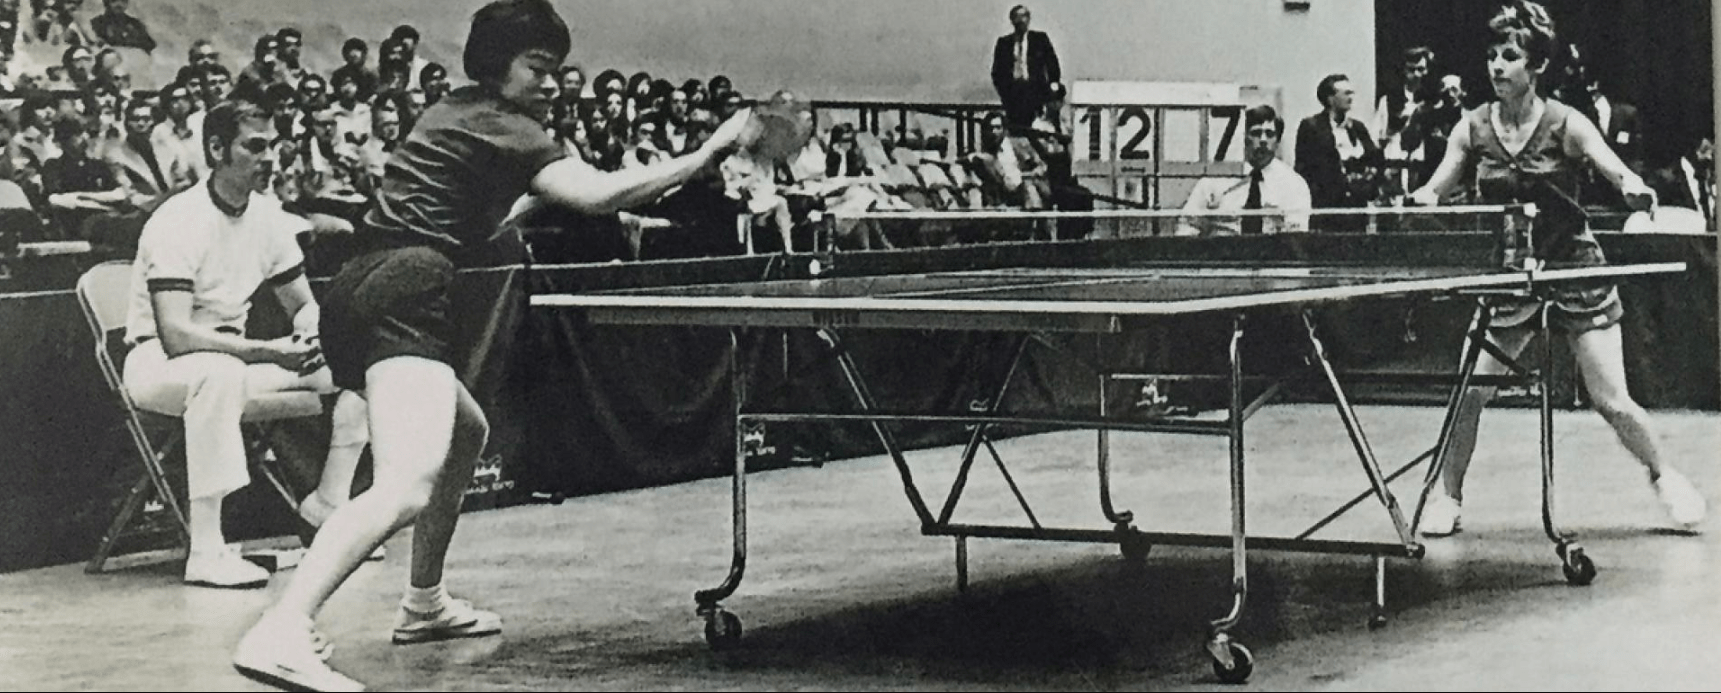 Connie Sweeris playing with visiting chinese table tennis team member in 1972